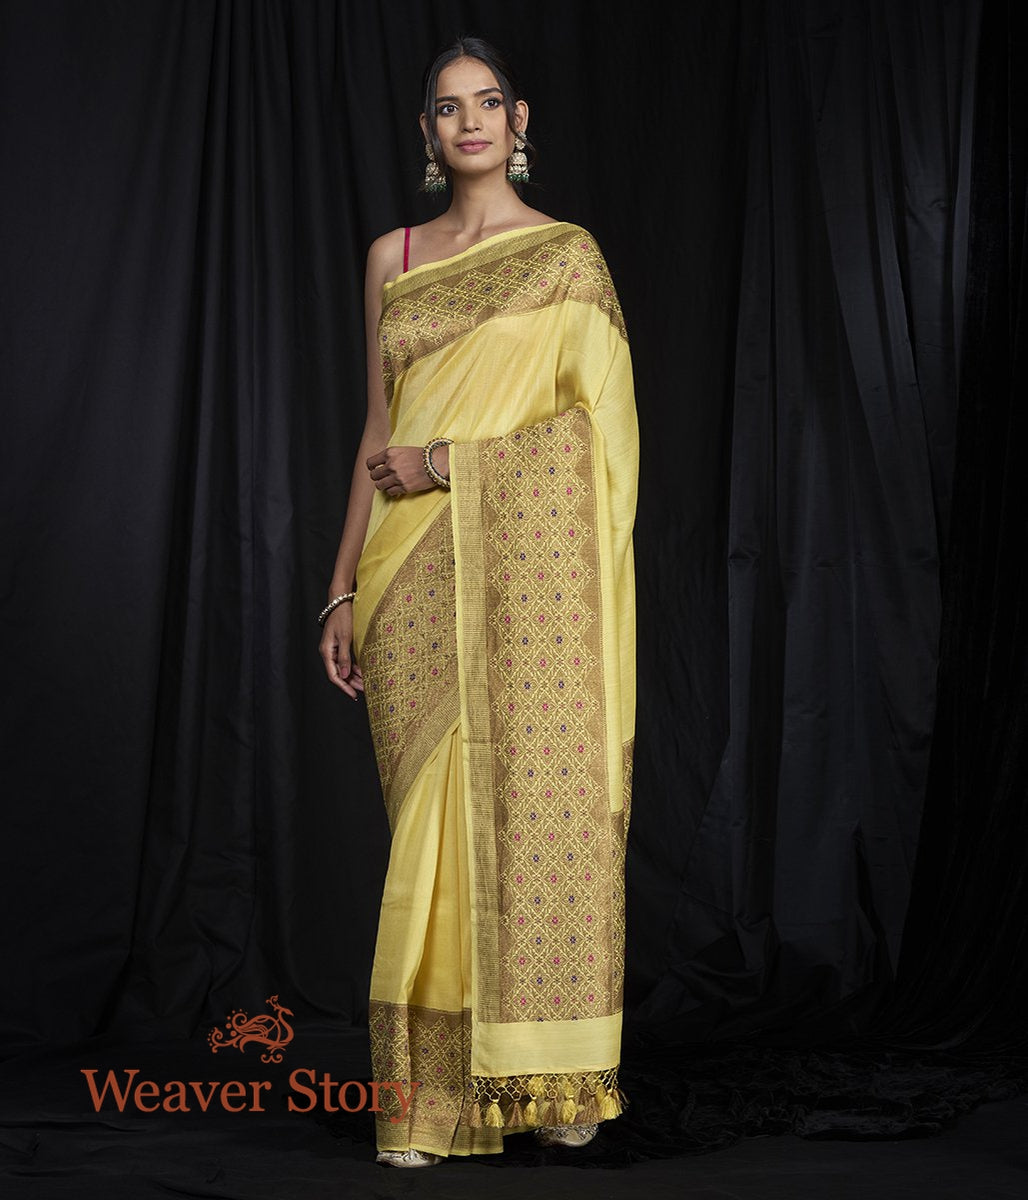 Handwoven Munga Silk Banarasi Saree with Meenakari Border